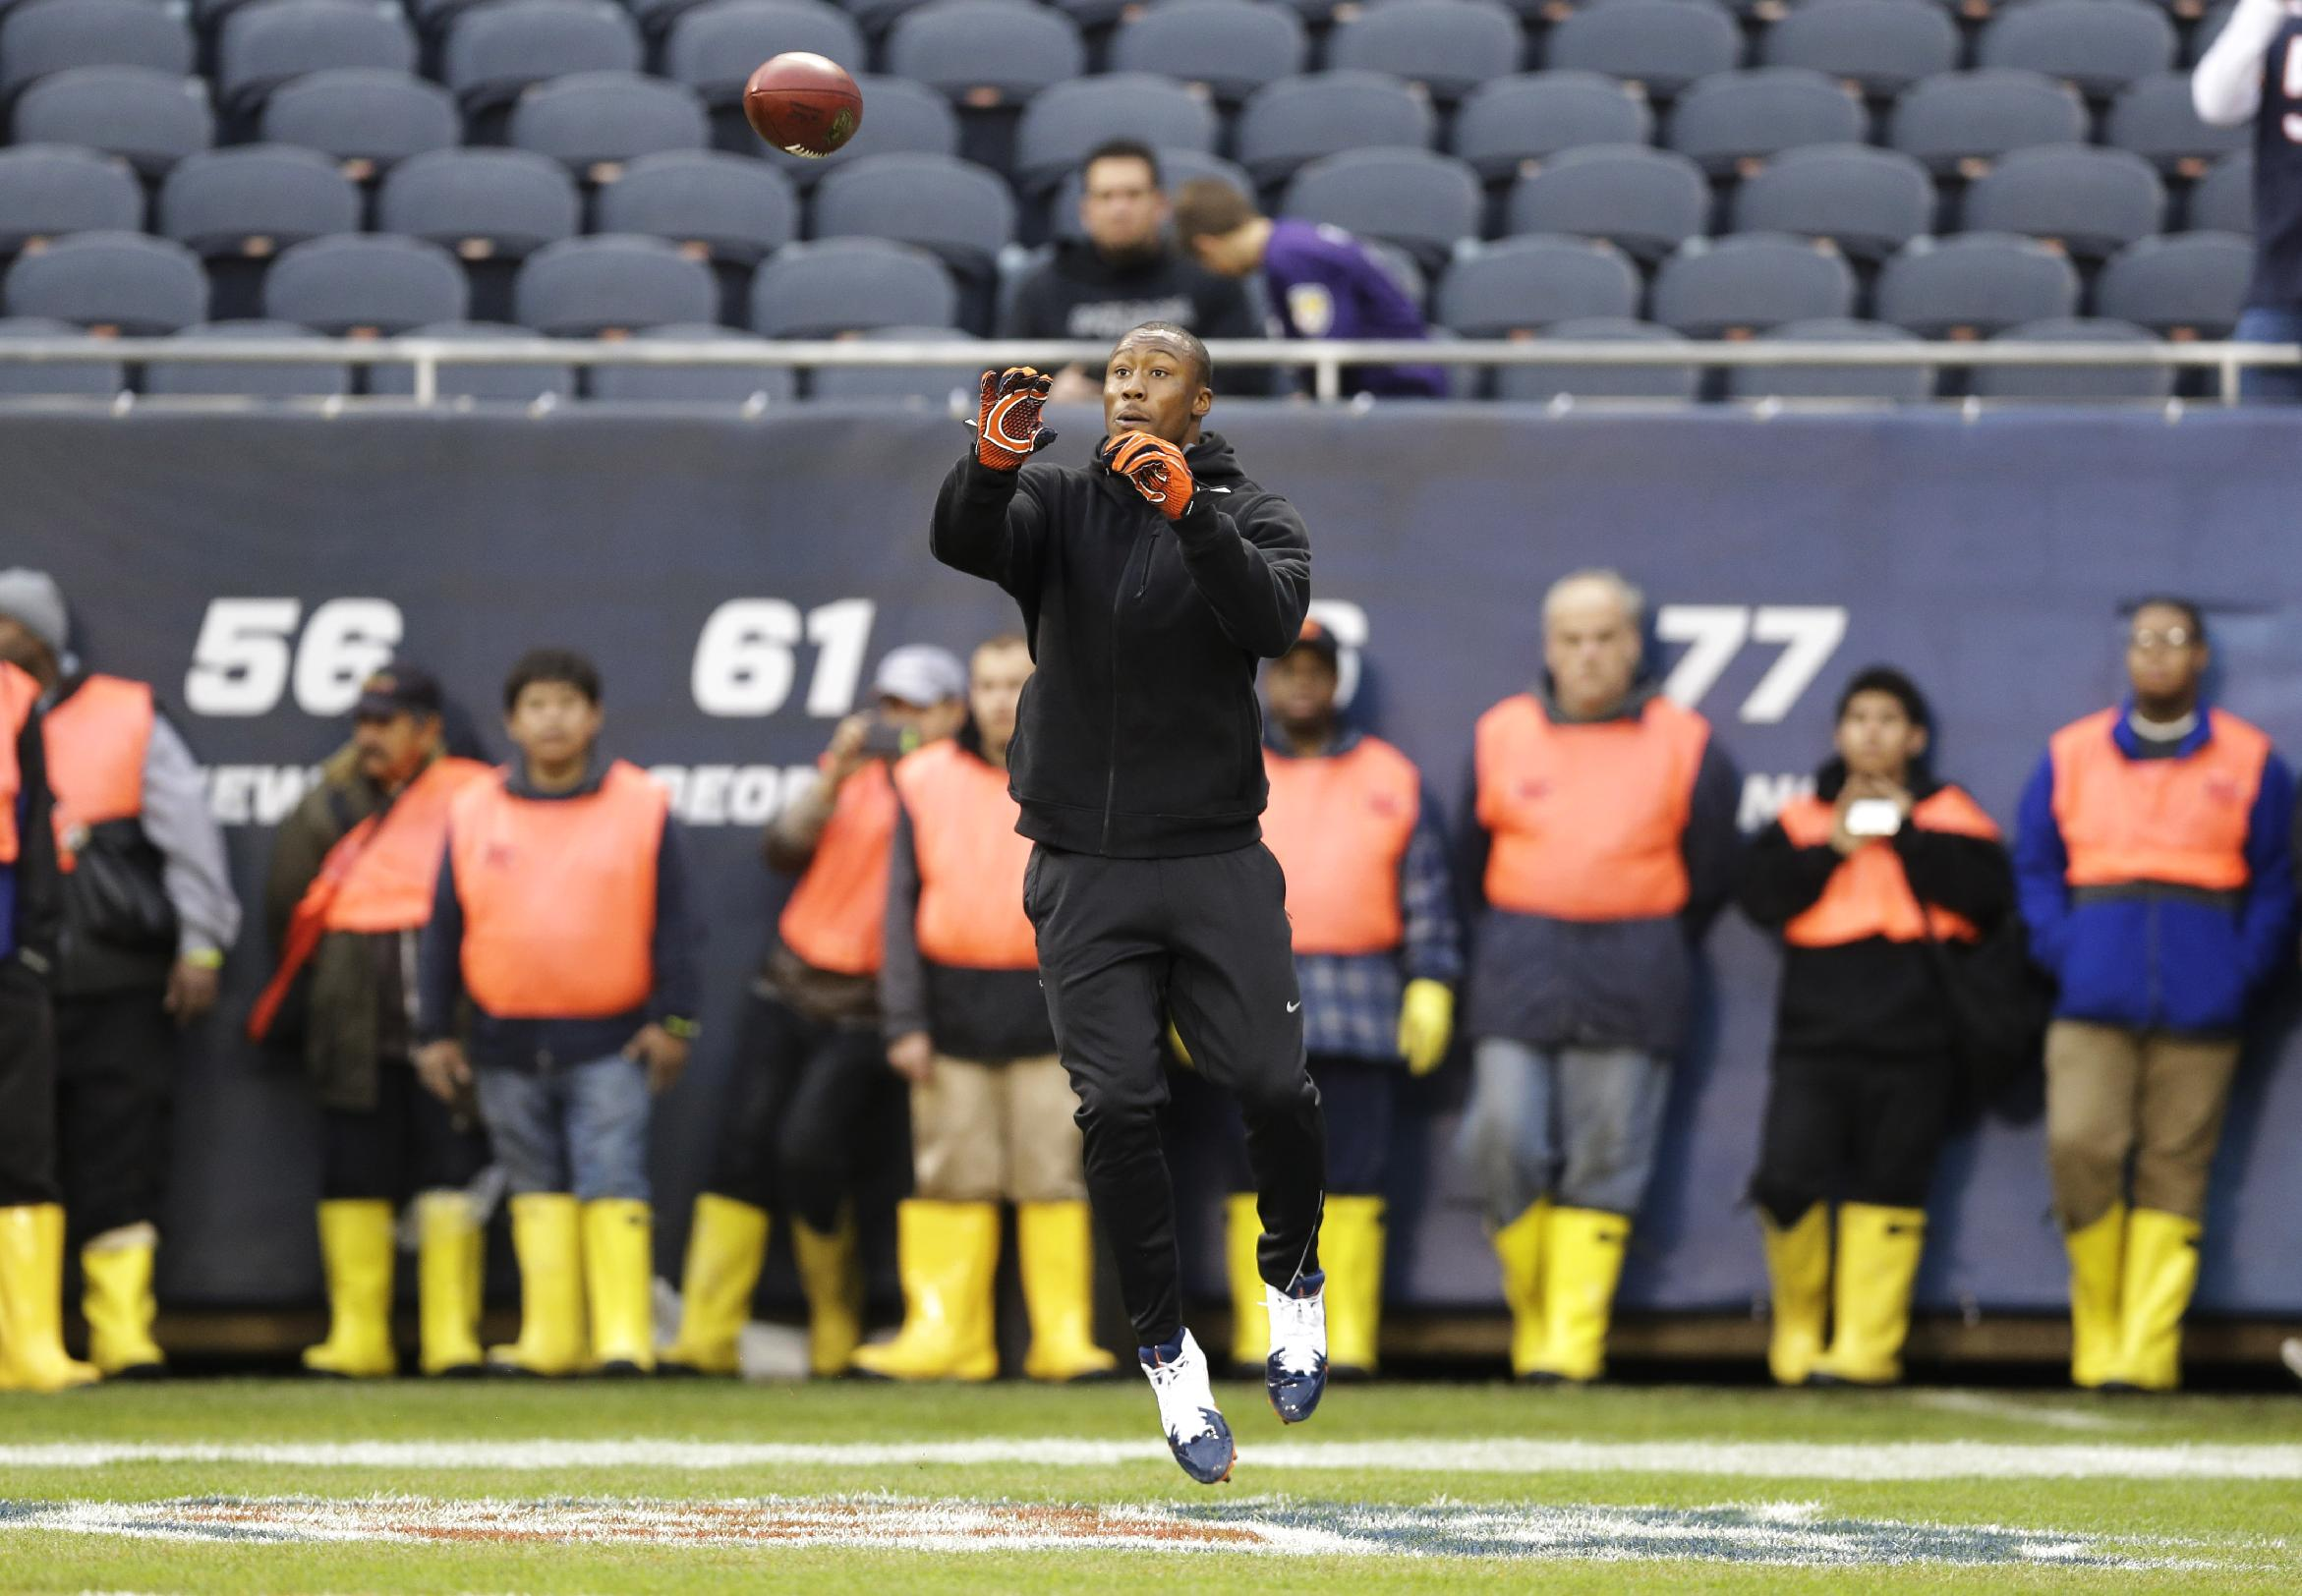 Chicago Bears wide receiver Brandon Marshall warms up as members of the grounds crew line up against the wall before an NFL football game against the Baltimore Ravens, Sunday, Nov. 17, 2013, in Chicago